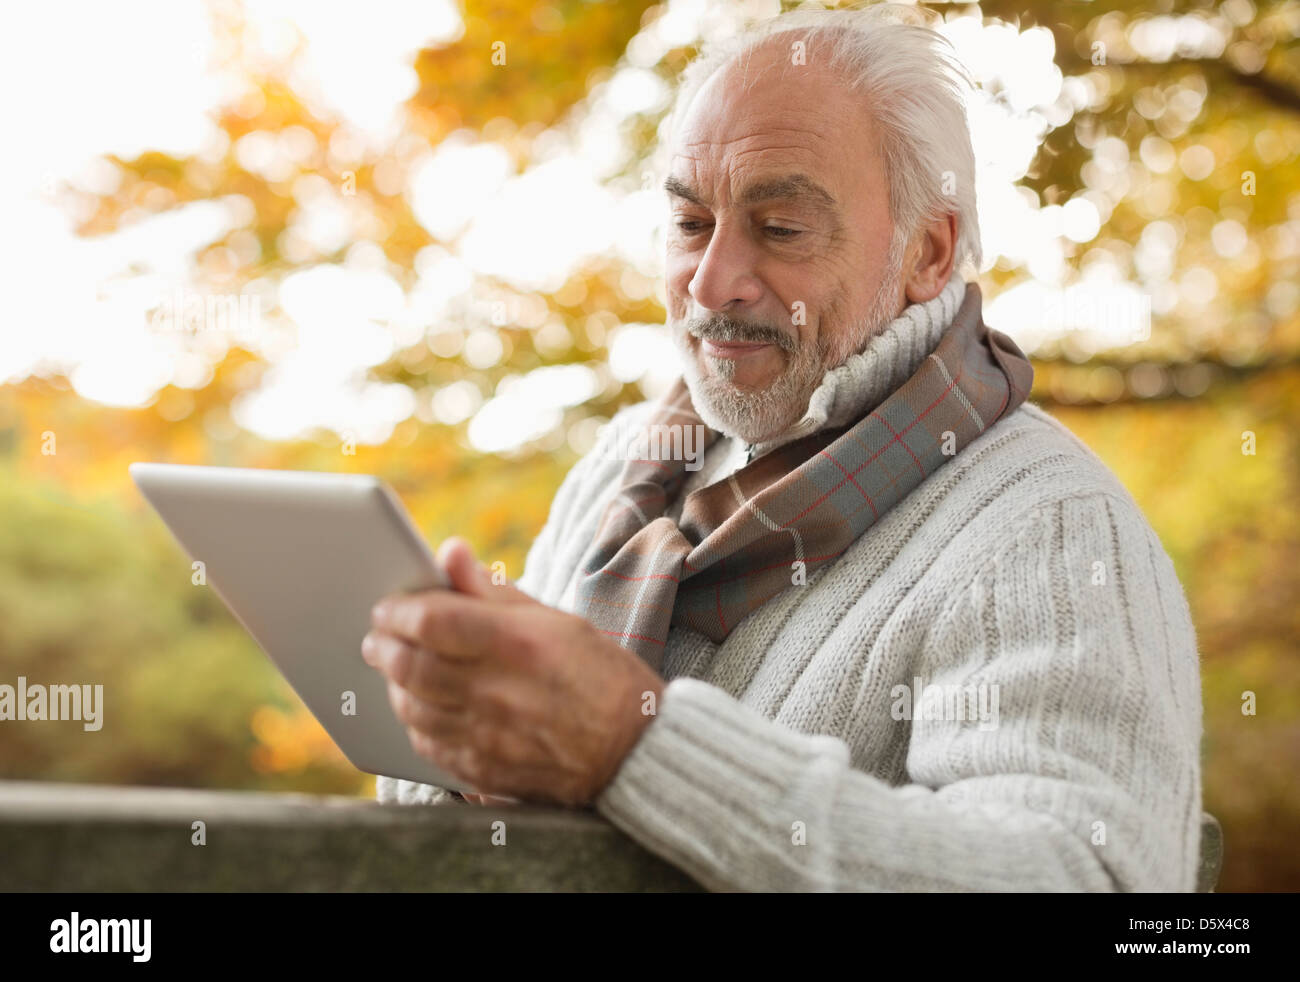 Older Man using tablet computer in park Photo Stock